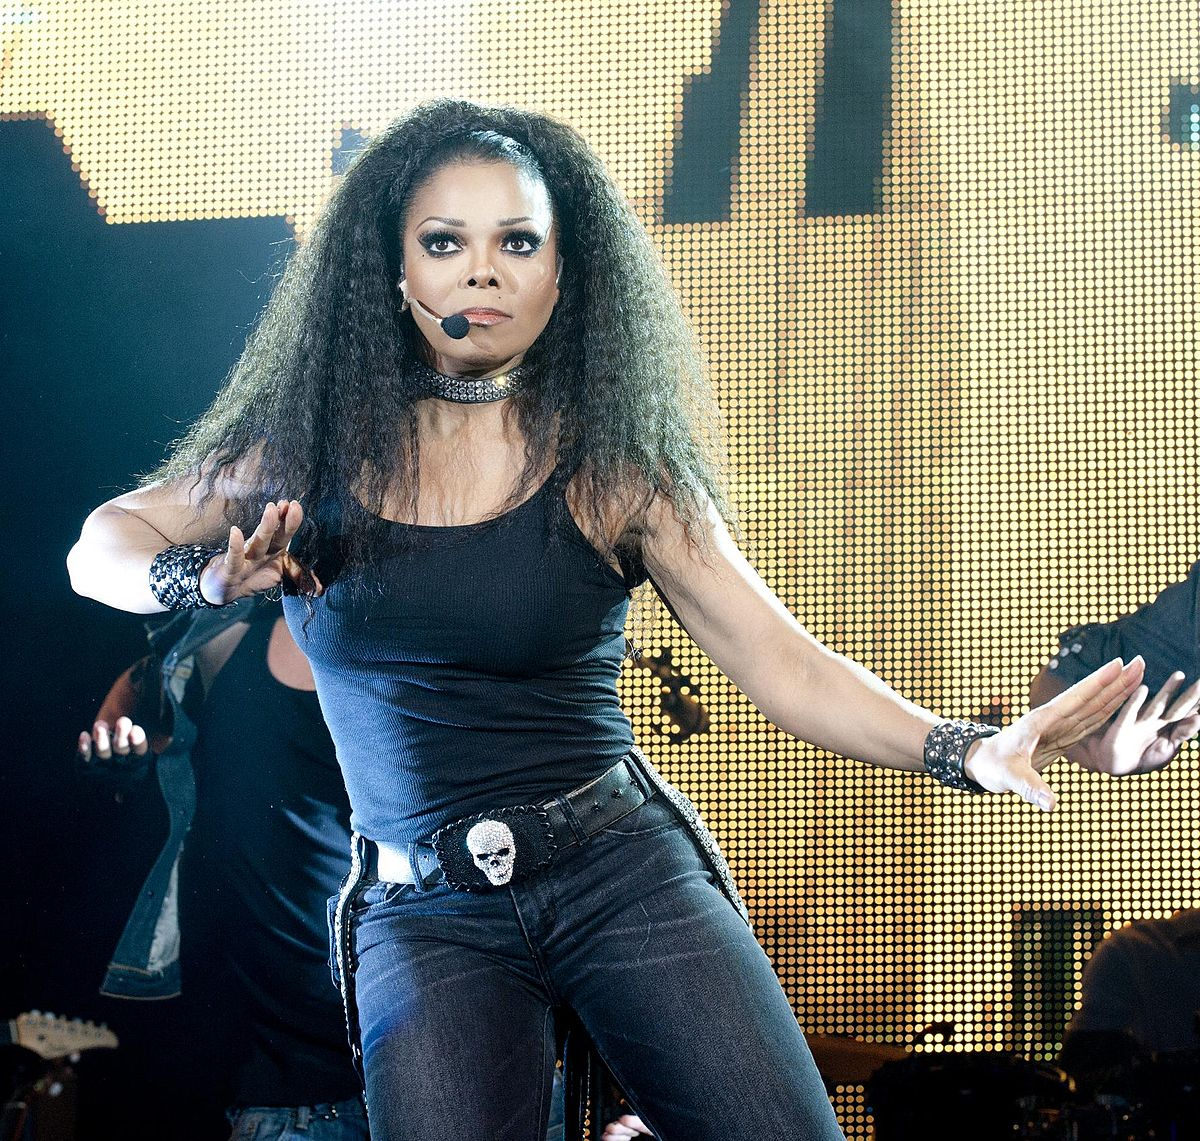 Janet Jackson announced she wouldn't be performing with Justin Timberlake in Super Bowl LII